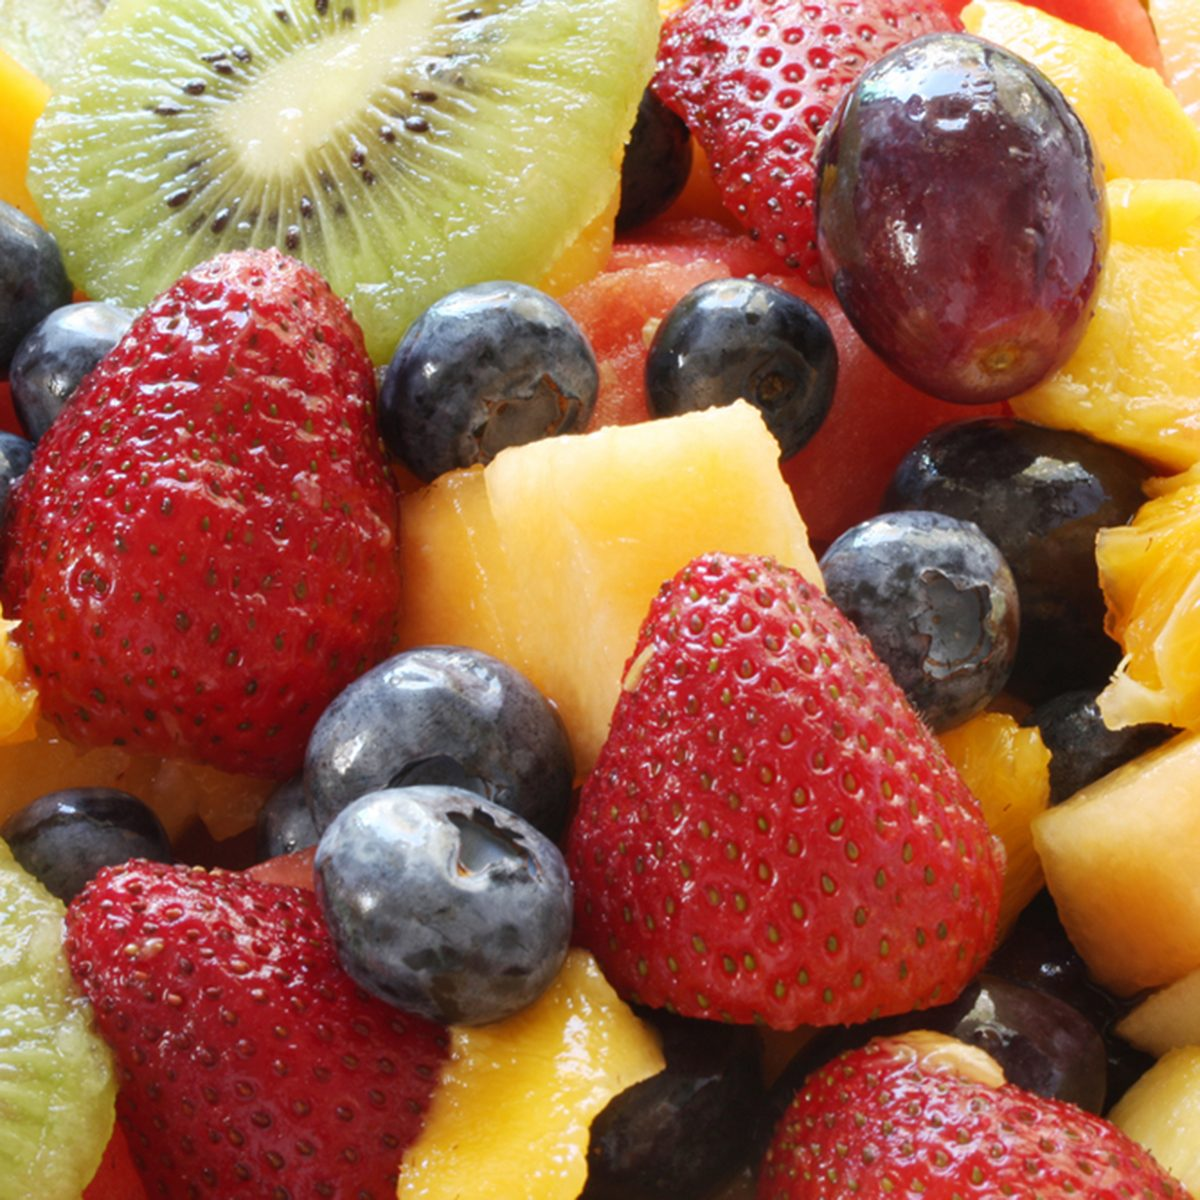 Fresh fruit salad in close-up